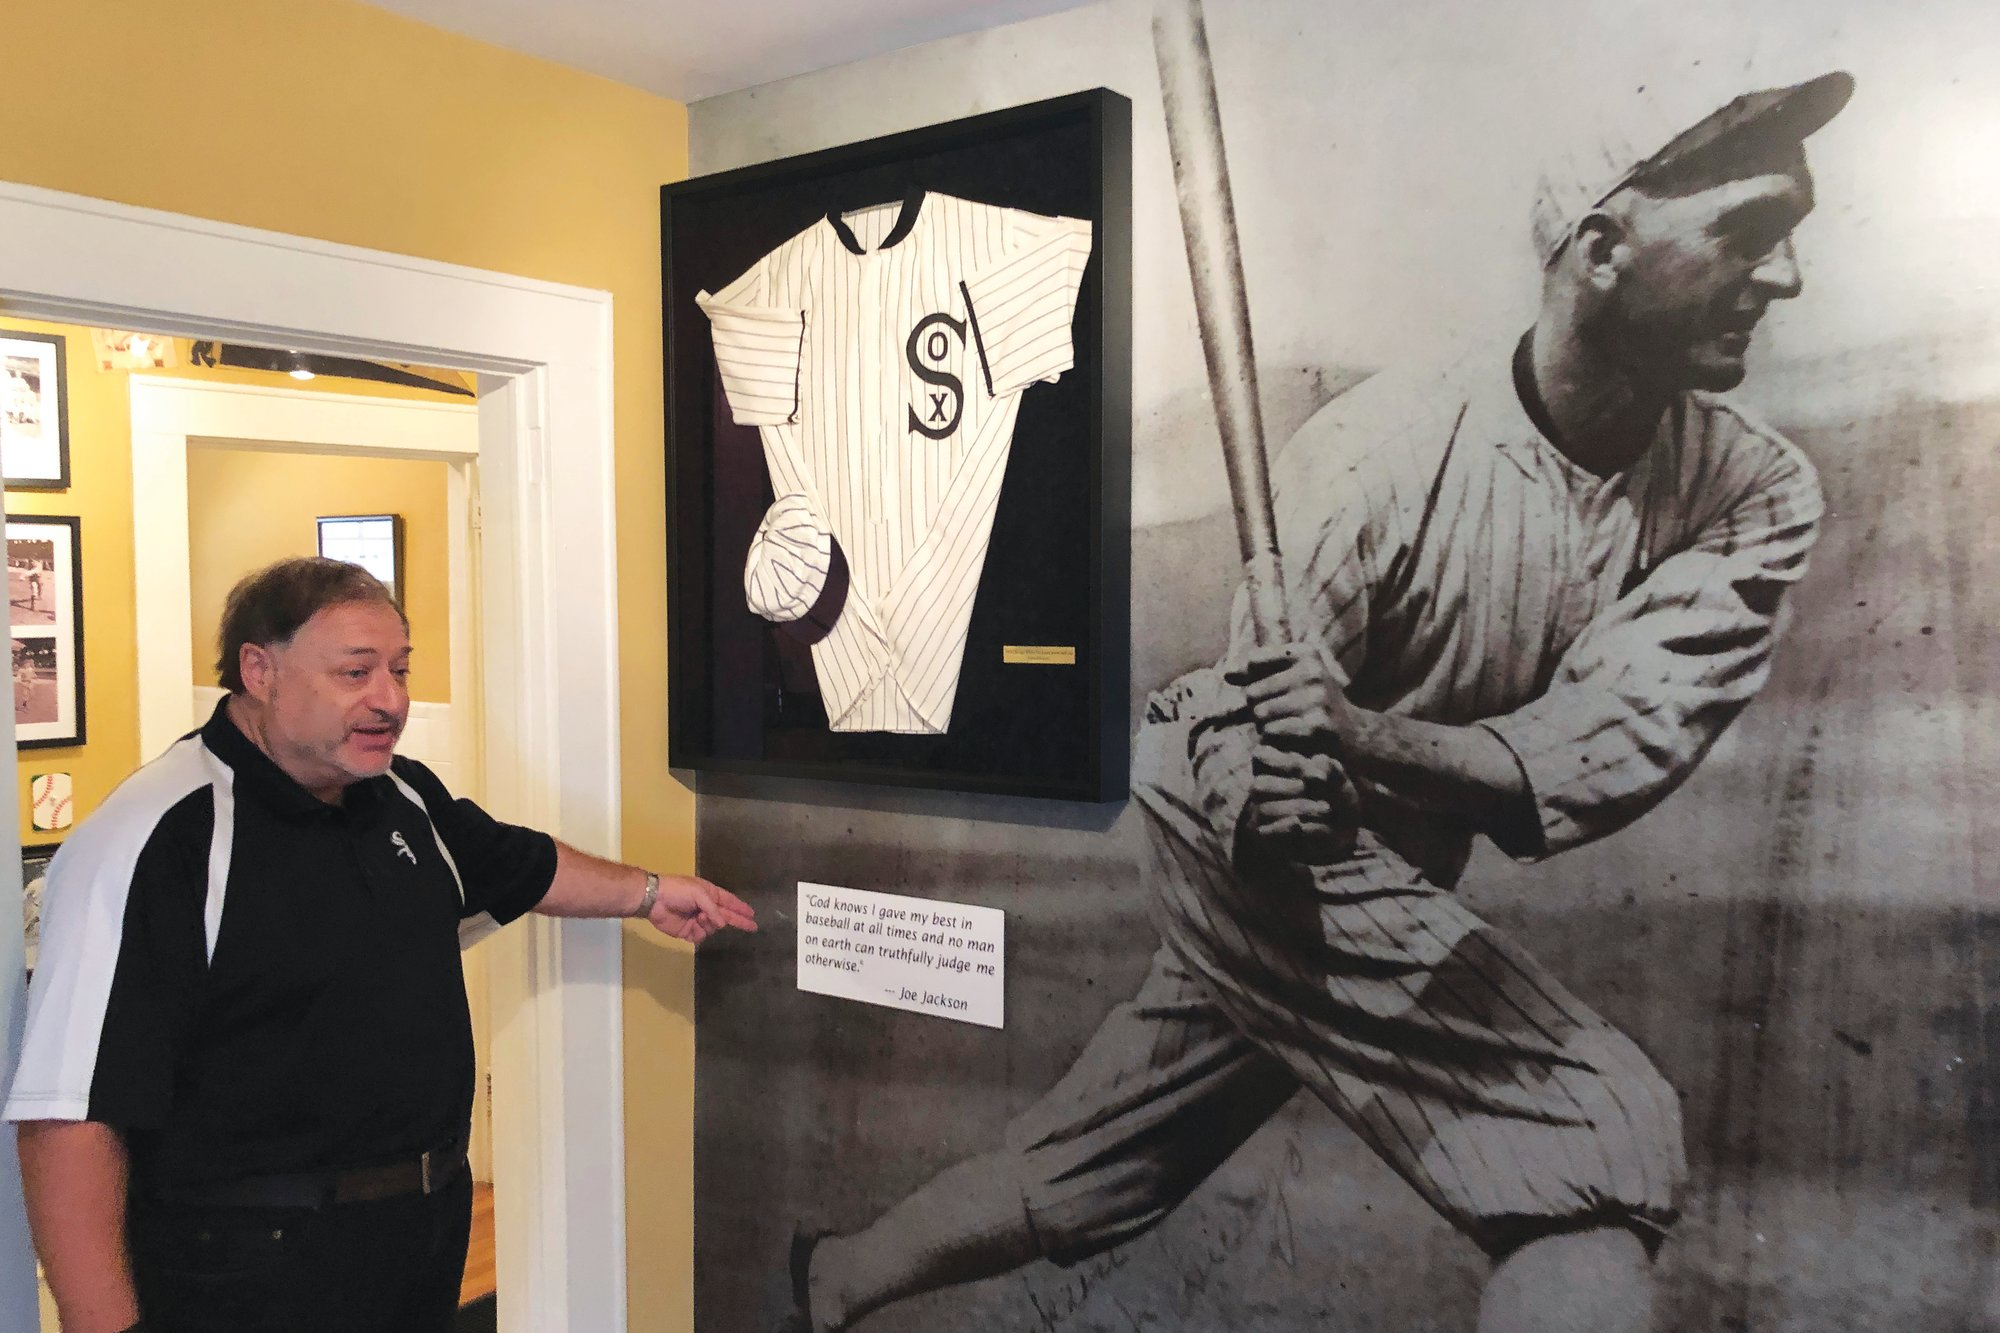 MLB needs to put Shoeless Joe back in the game | The Sumter Item